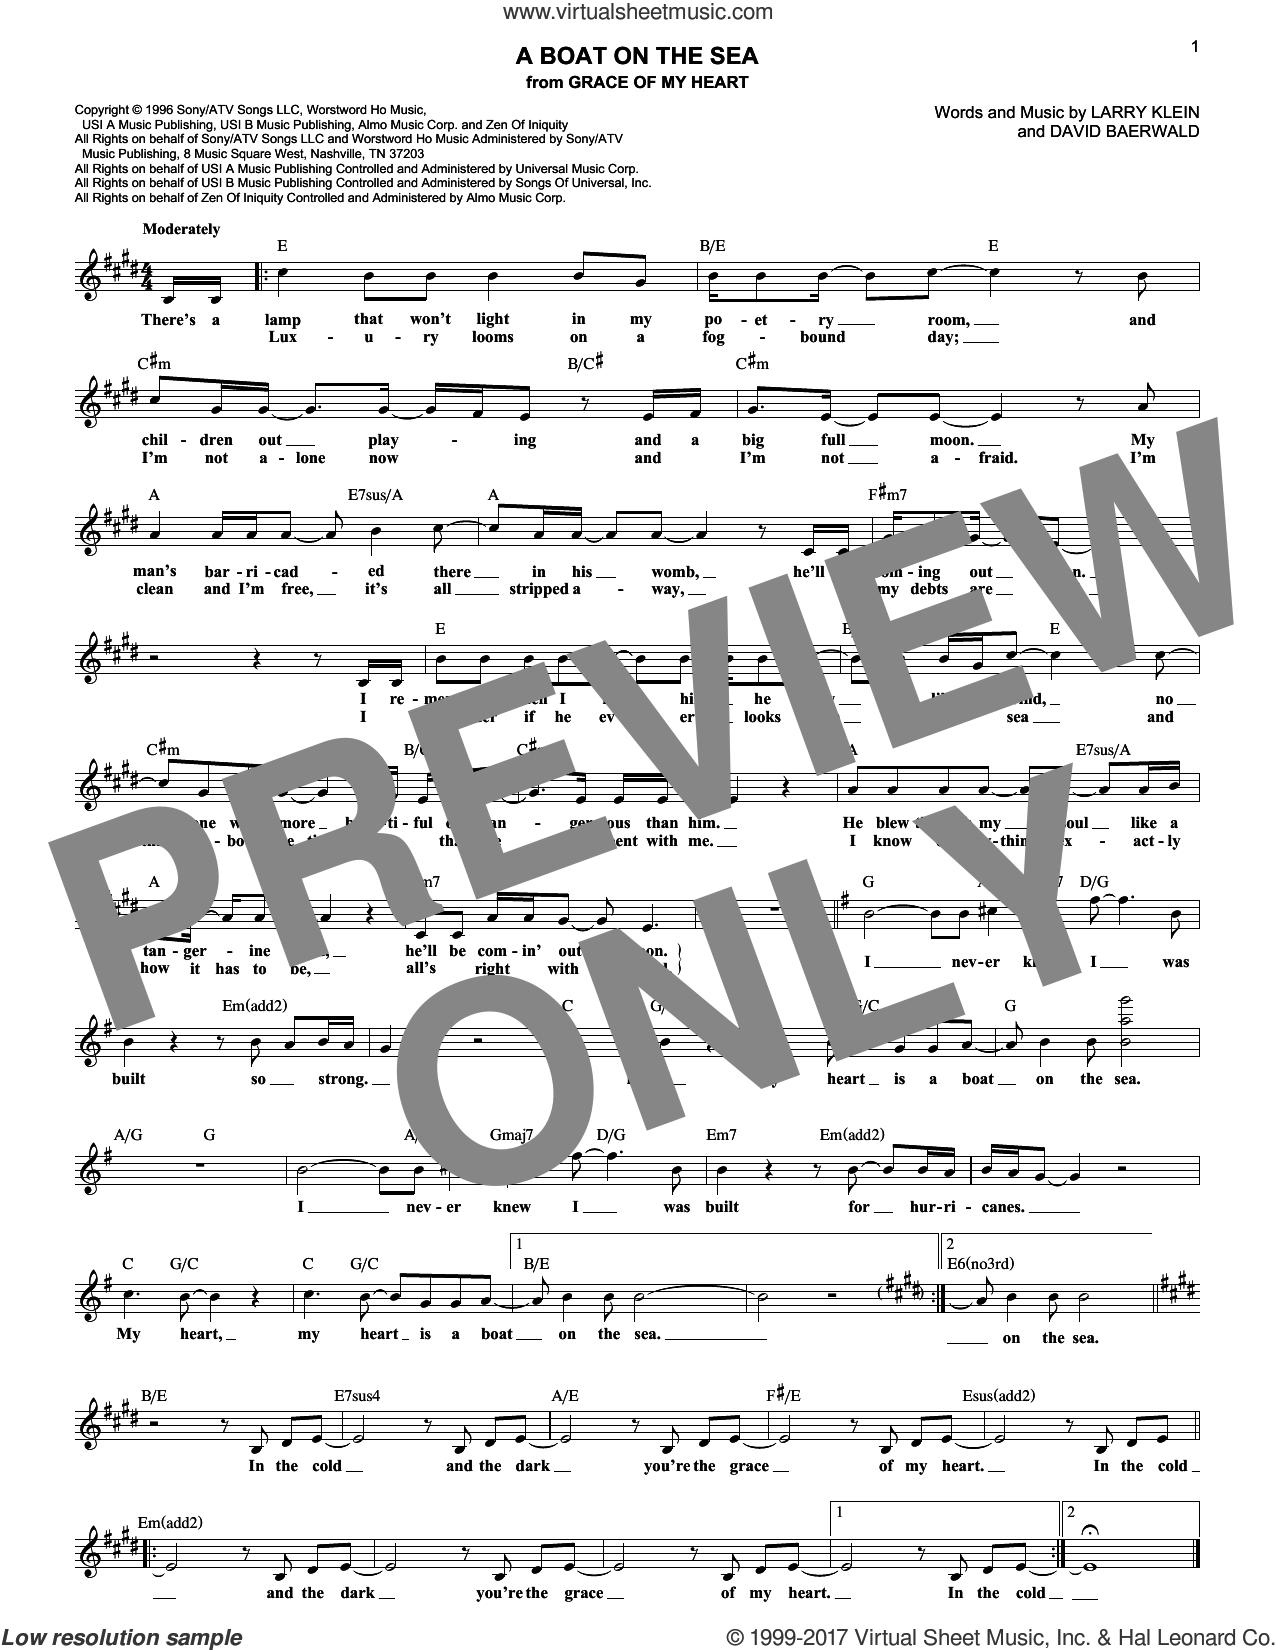 A Boat On The Sea sheet music for voice and other instruments (fake book) by David Baerwald and Larry Klein, intermediate skill level